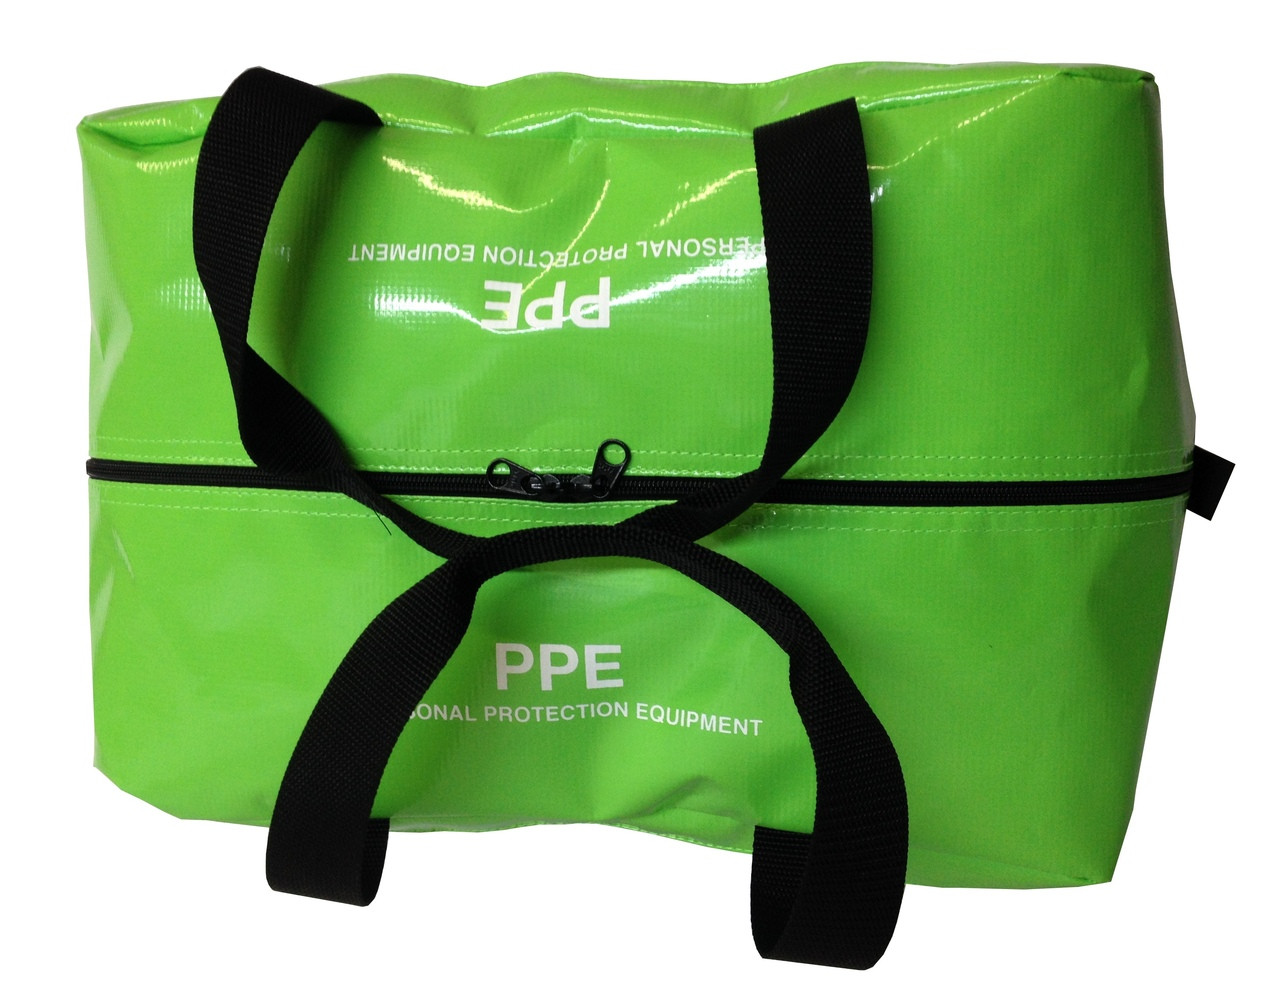 PPE Bag Top View